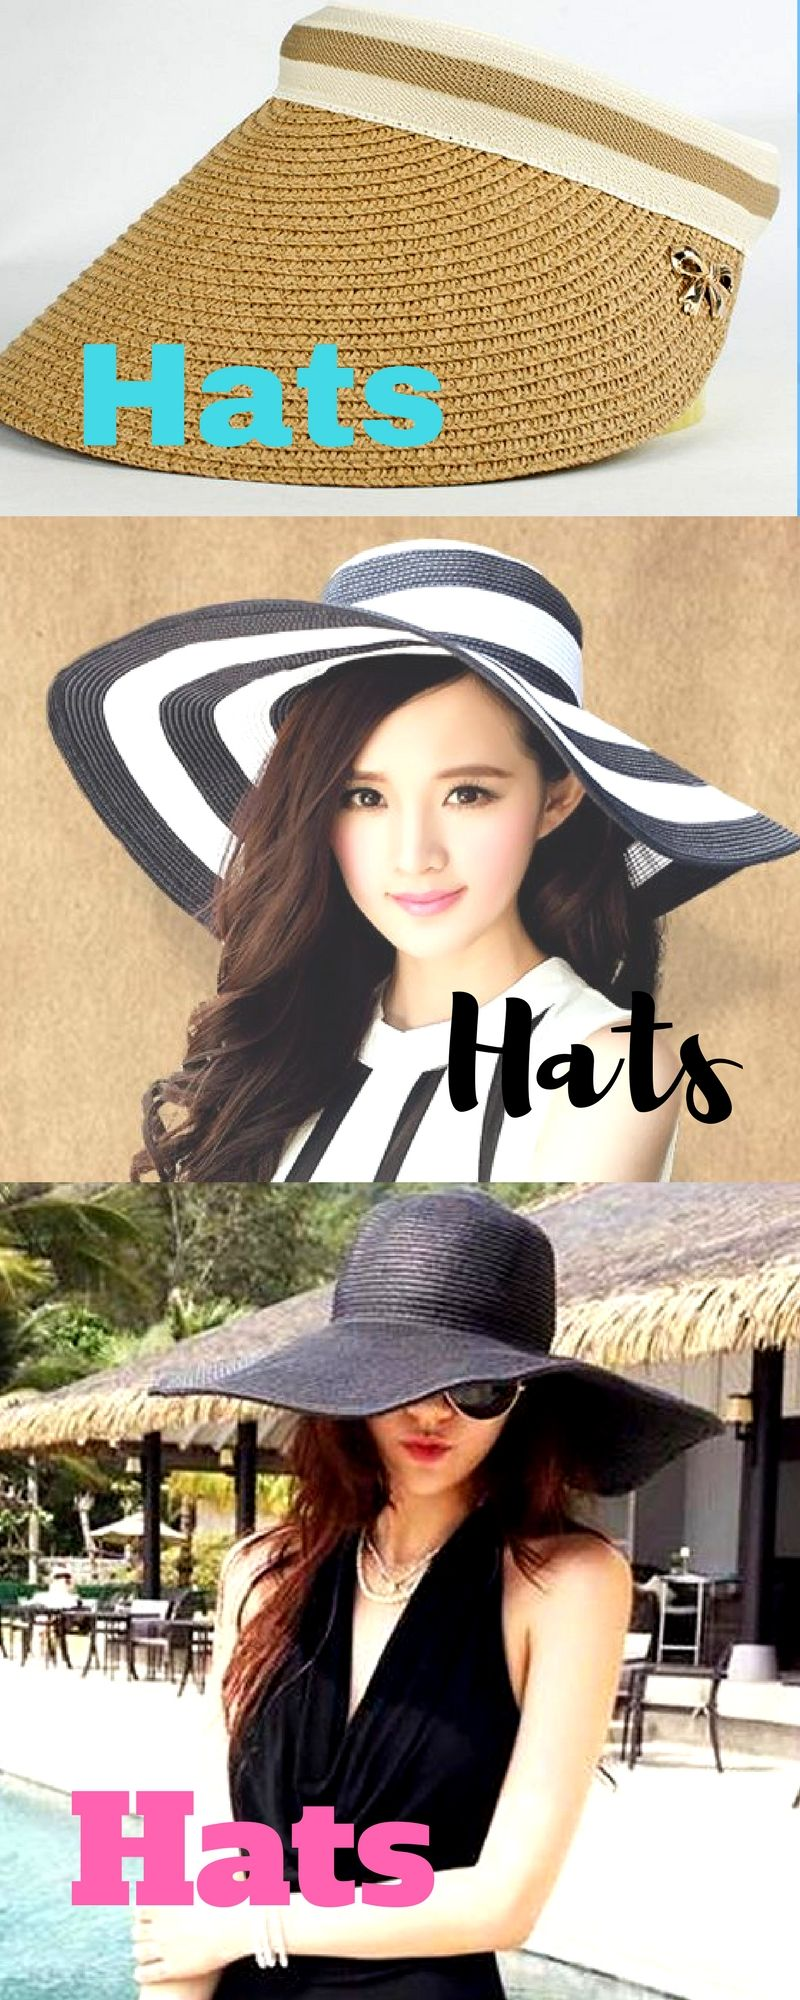 aa24d2326555e Hats to protect you from the sun. Great beach fashion!